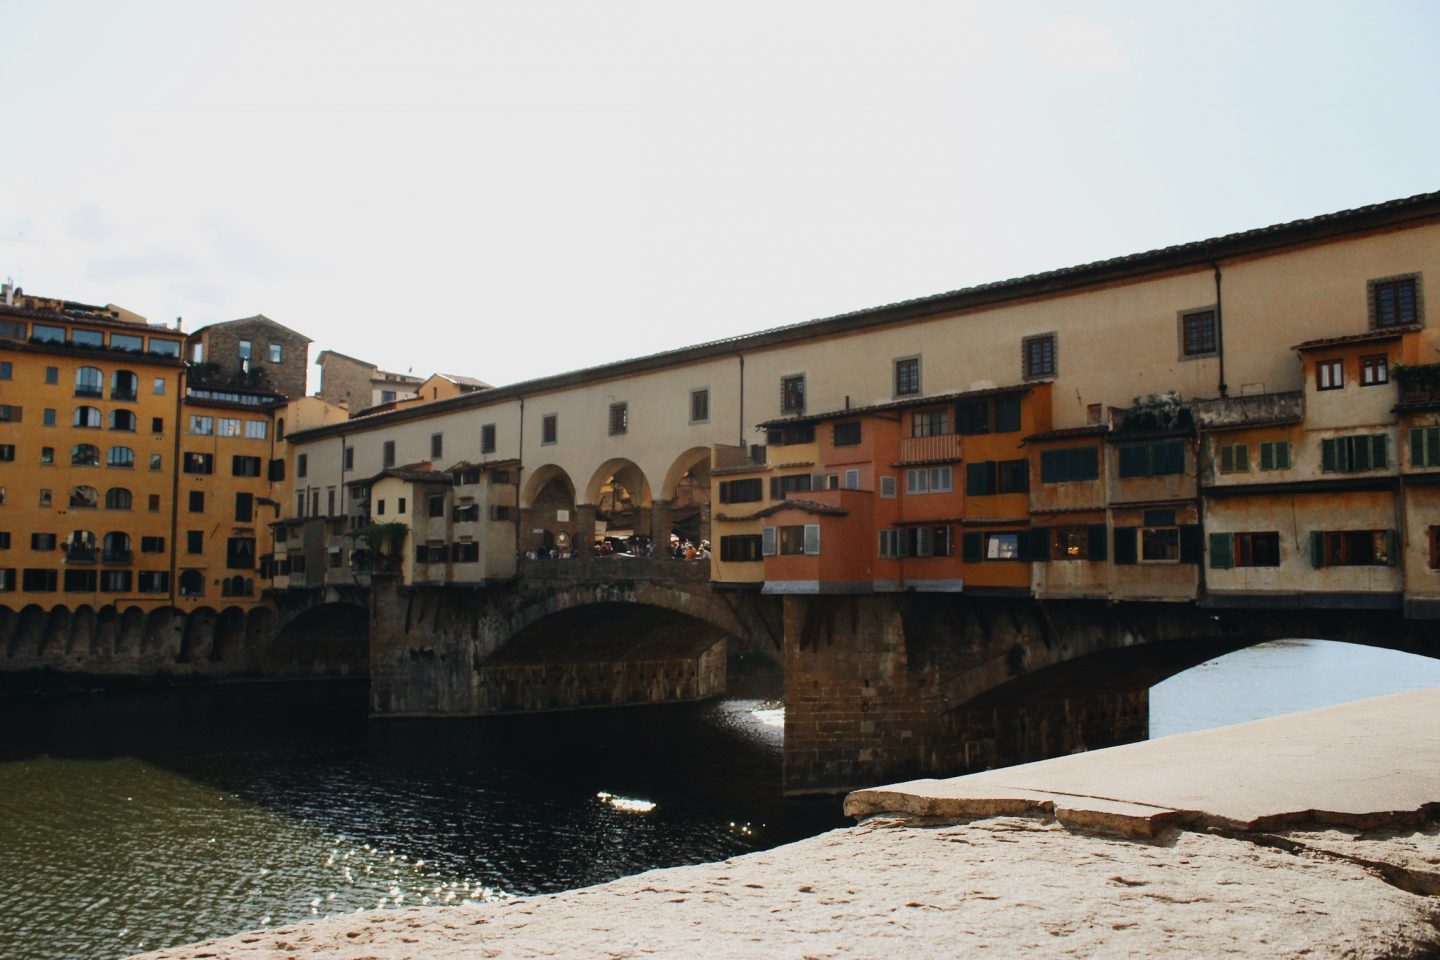 The Ponte Vecchio in Florence, Italy!